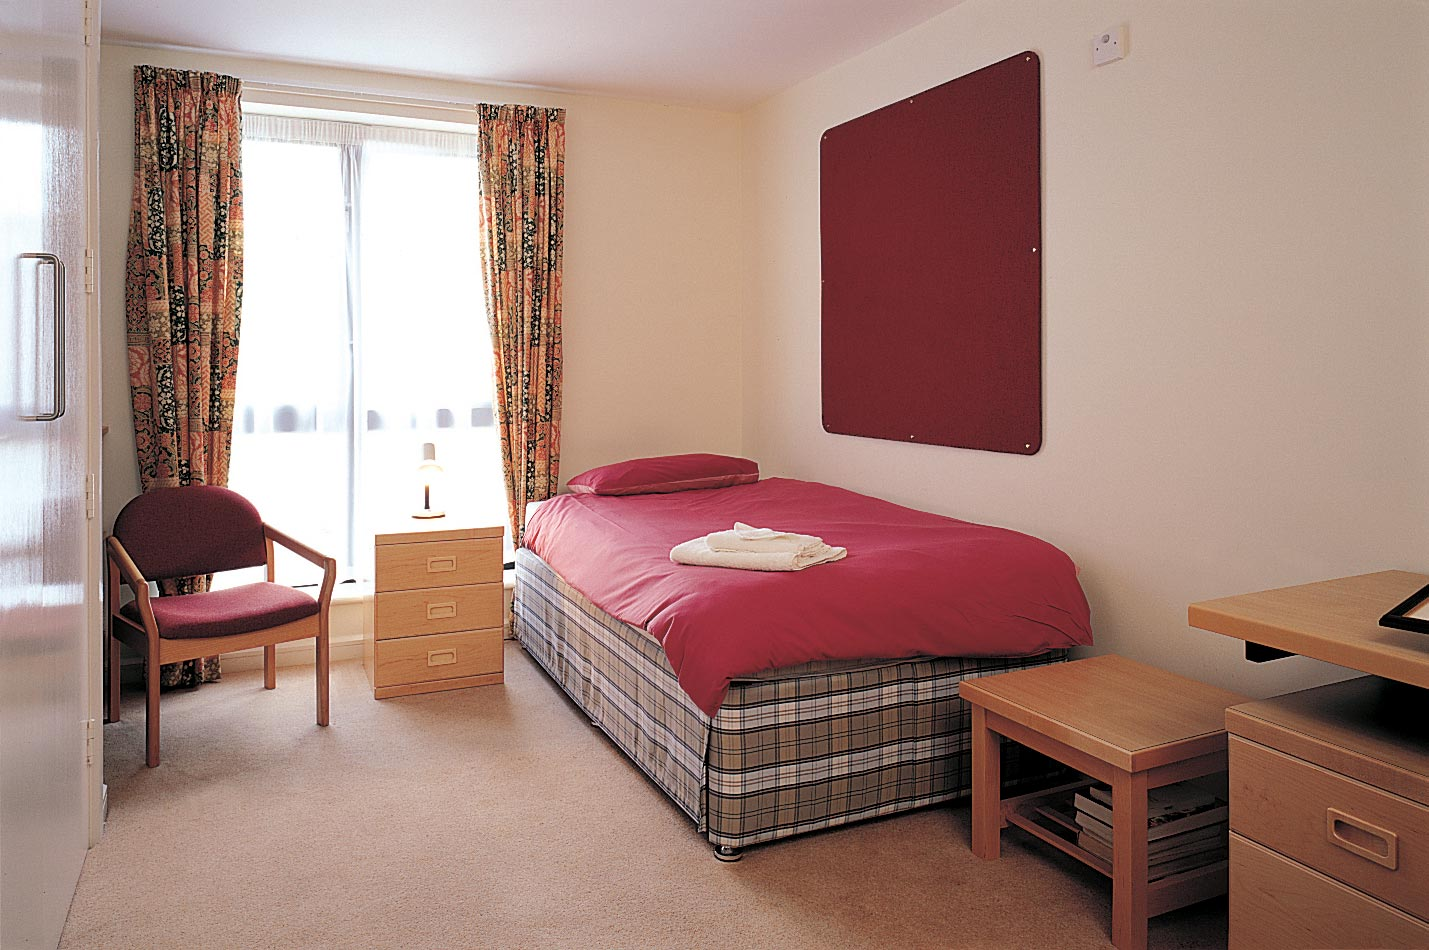 Founder s Building en suite room. En Suite Accommodation   St Antony s College